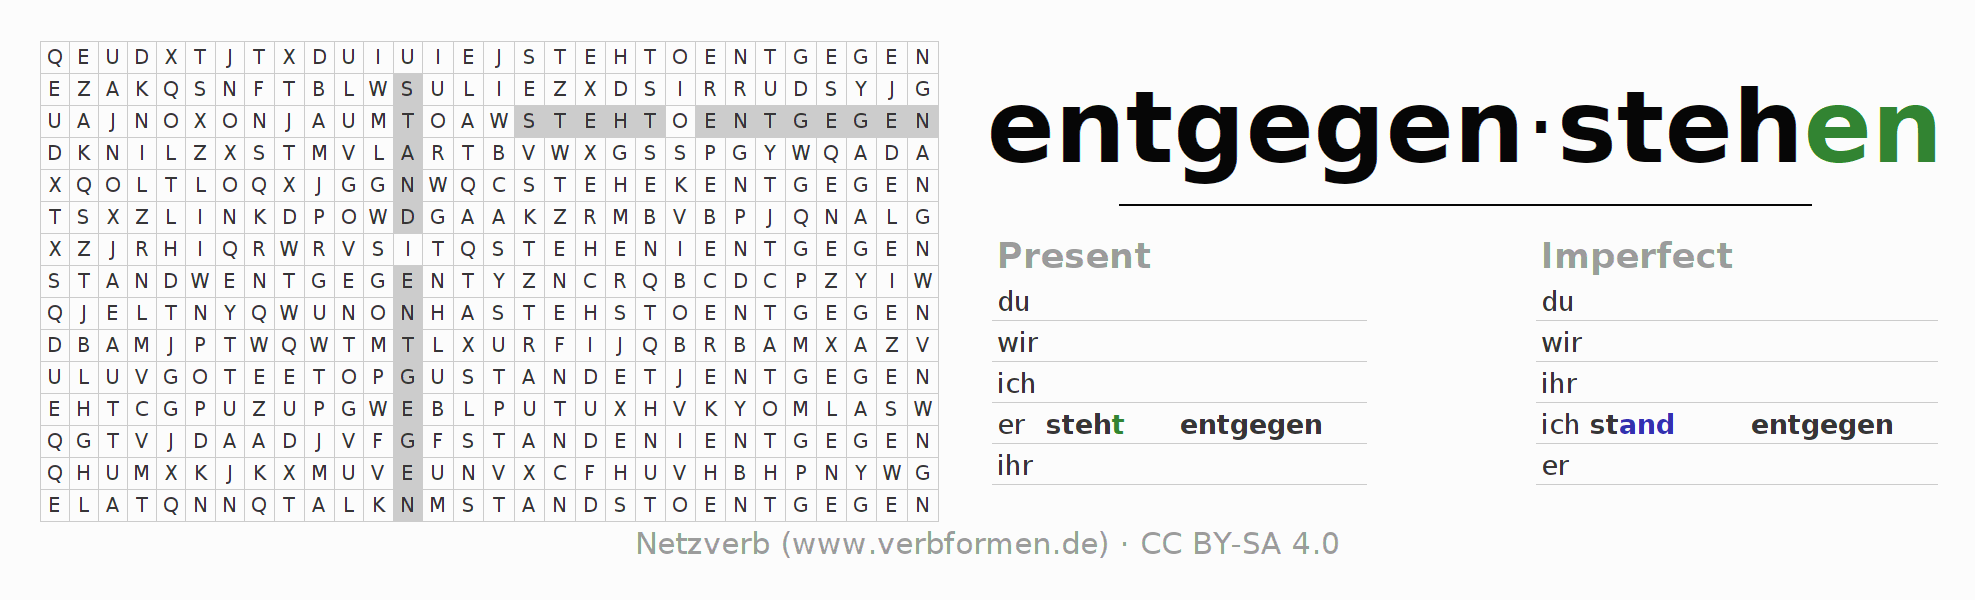 Word search puzzle for the conjugation of the verb entgegenstehen (hat)